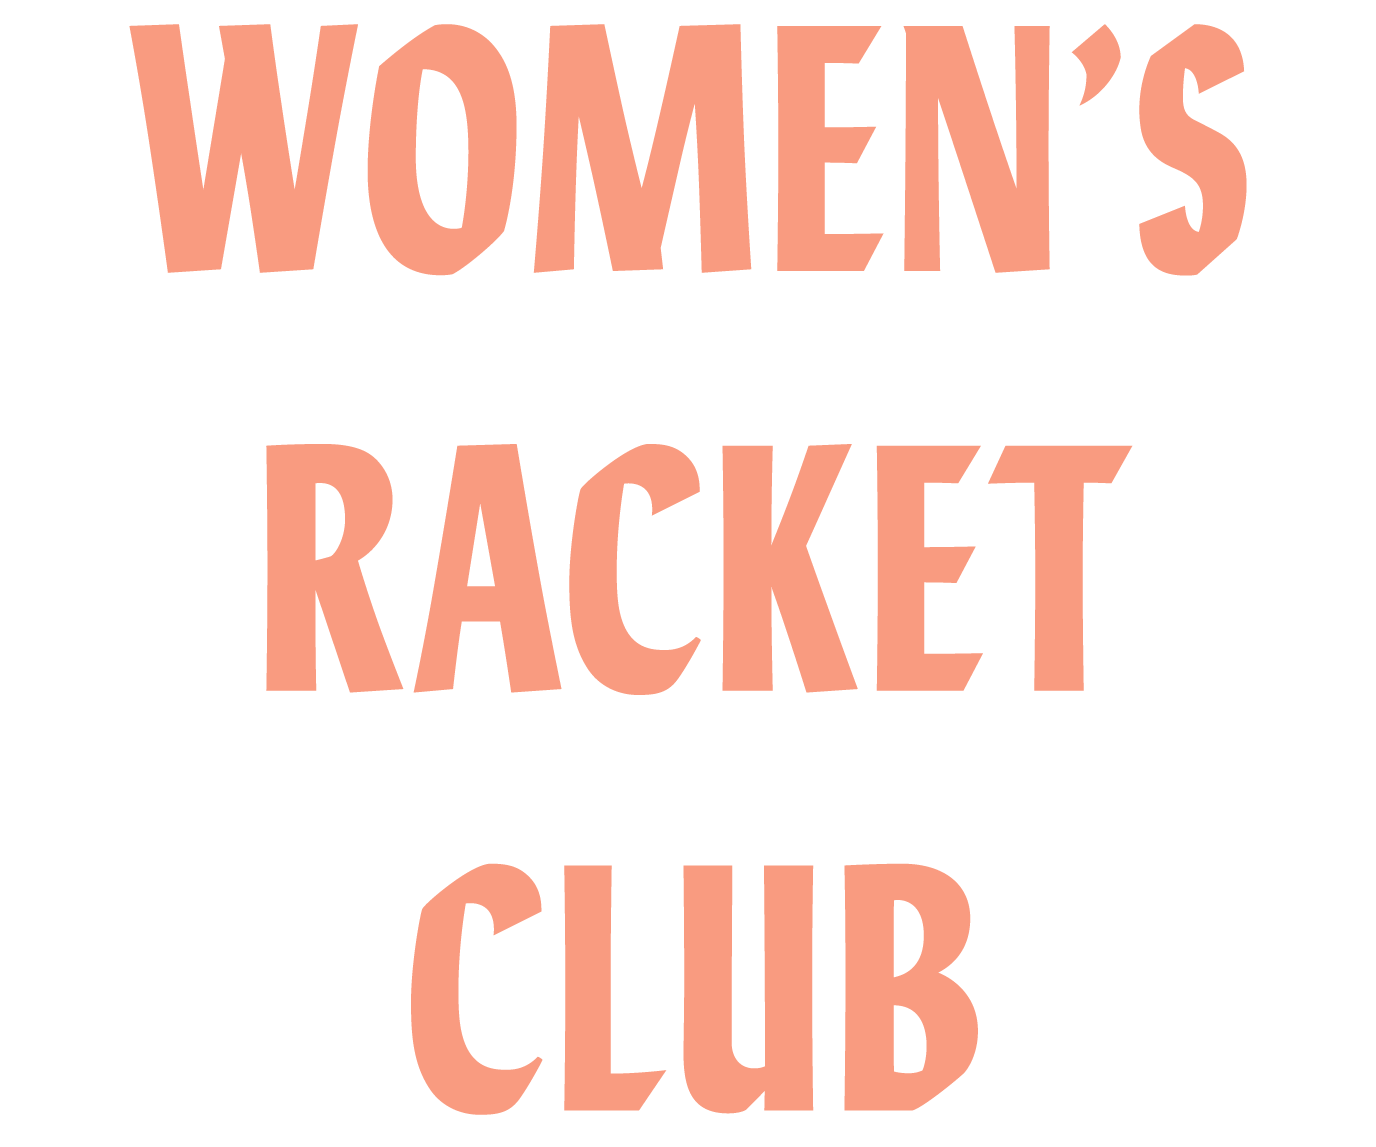 Women's Racket Club